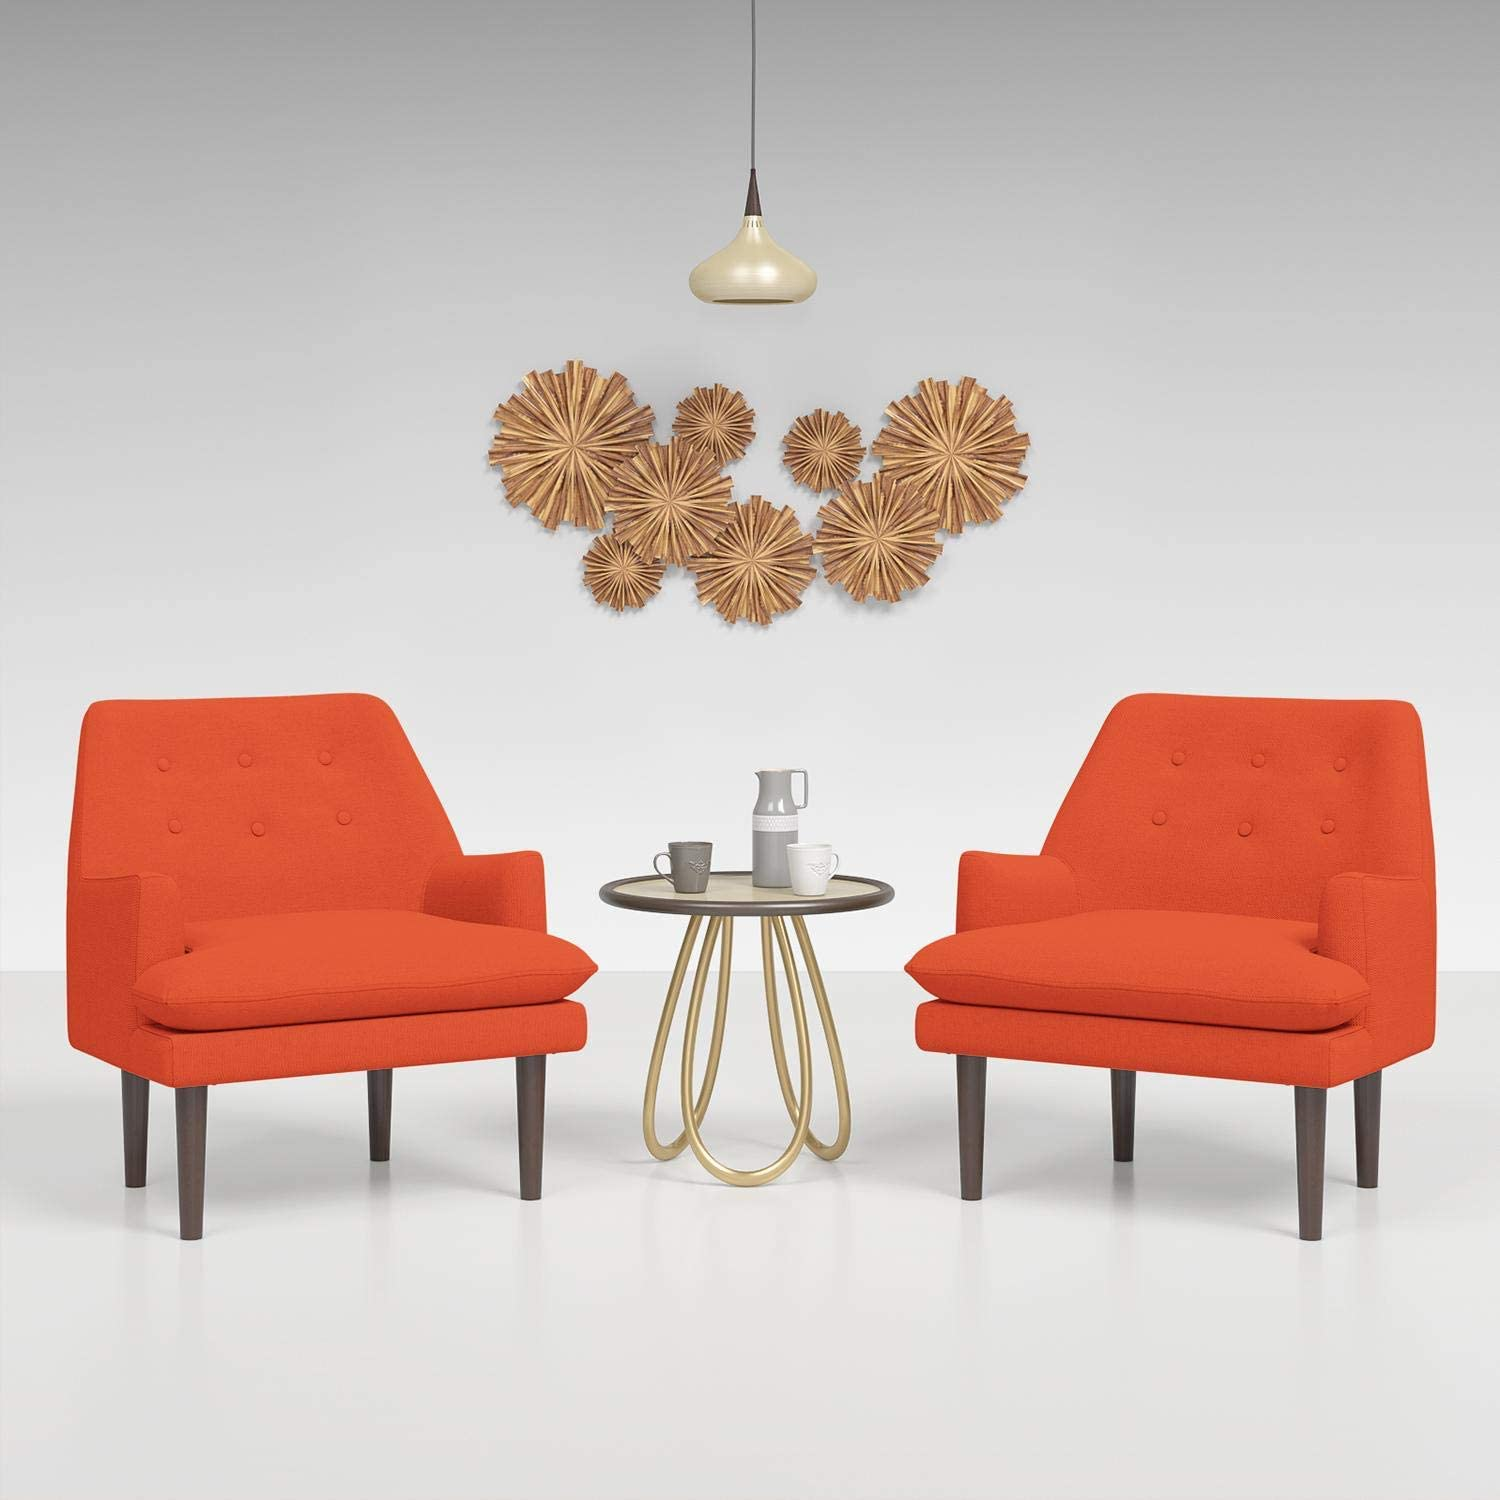 JustRoomy Mid-Century Modern Fabric Arm お気に入 受賞店 Chairs Living Room for